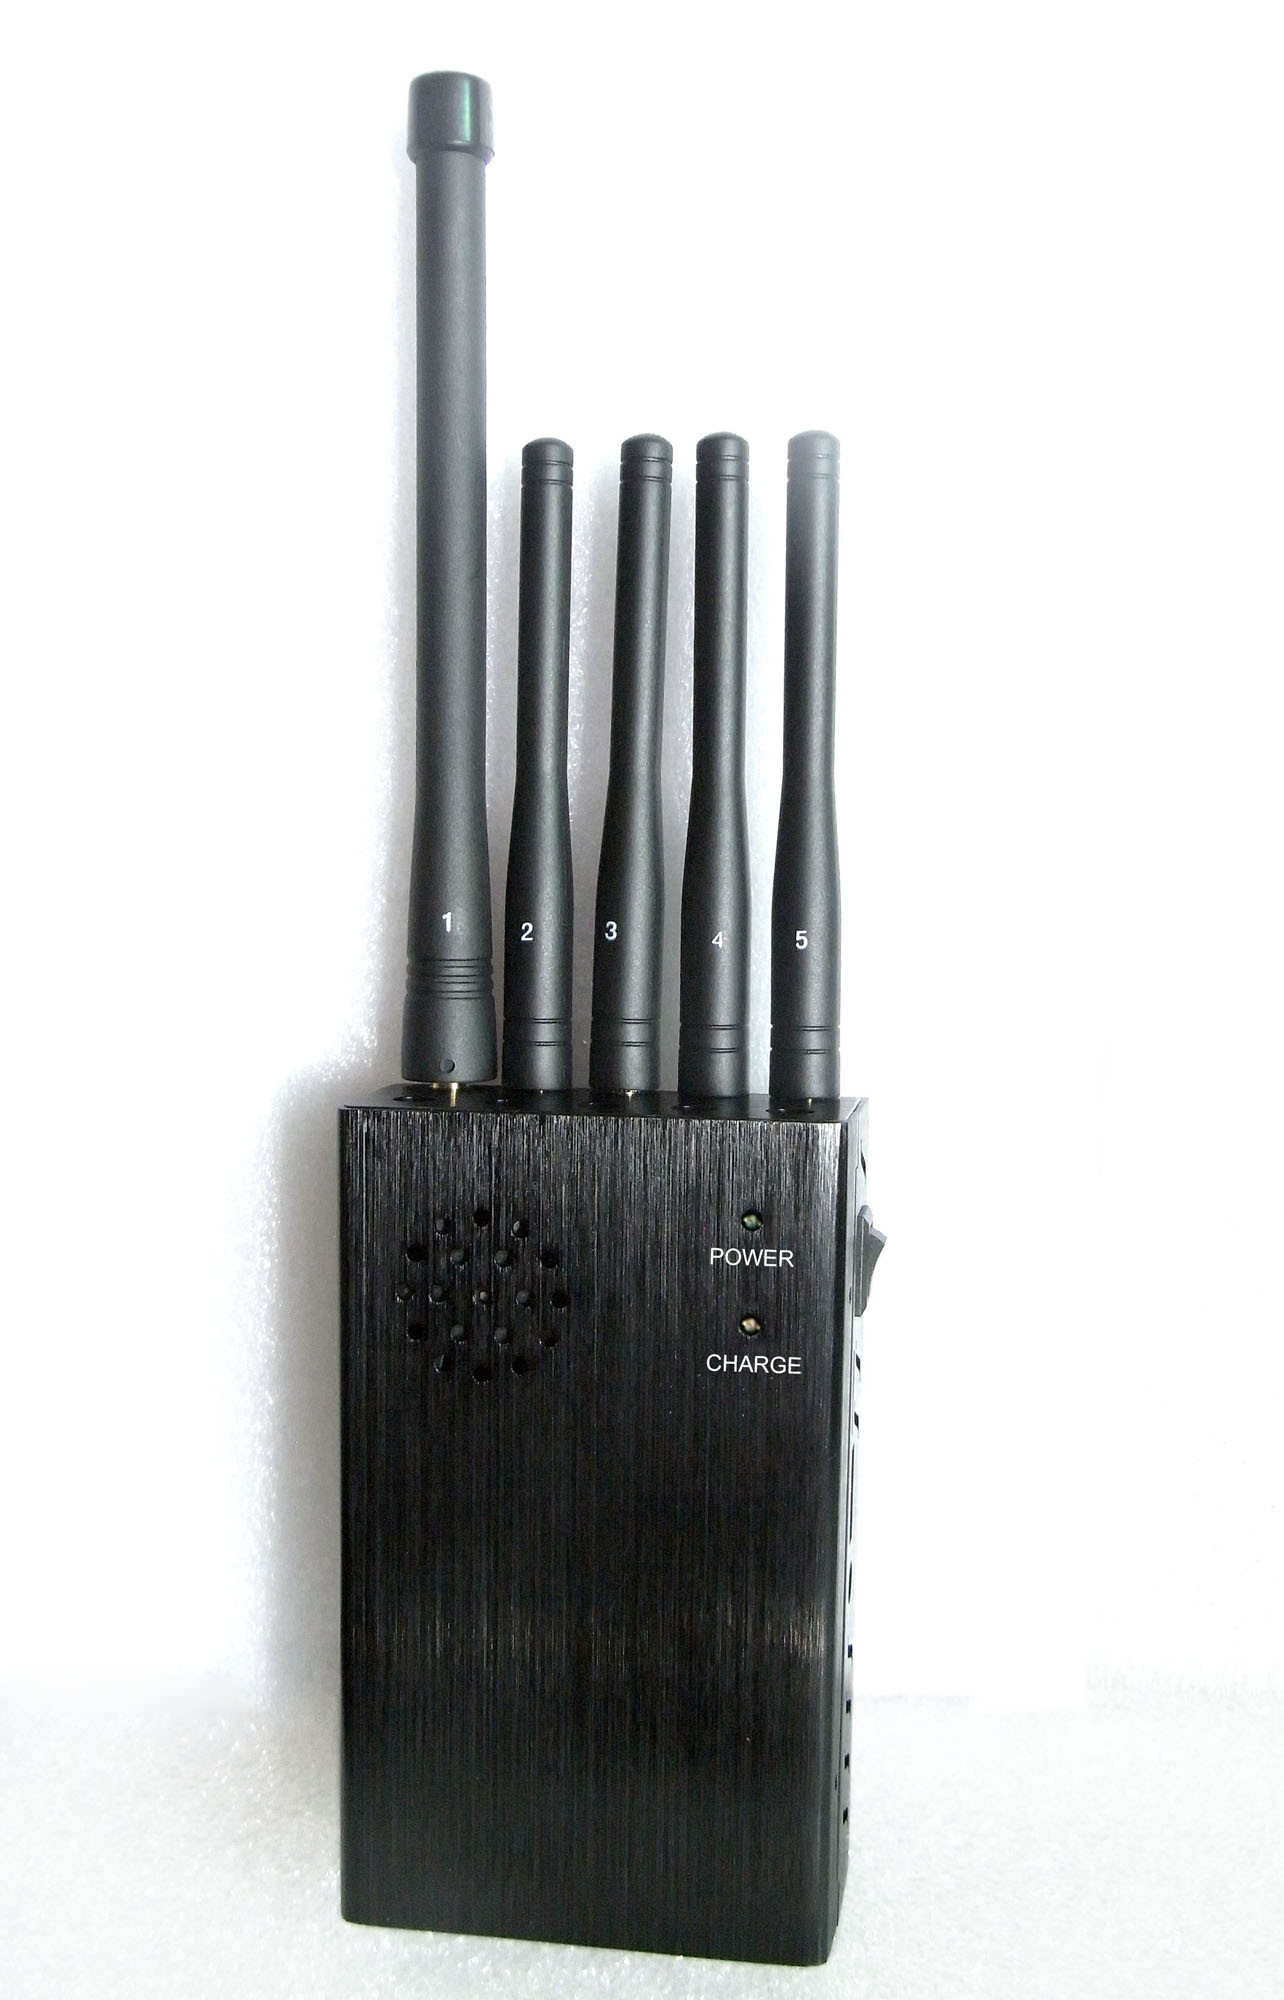 phone as jammer emp - China New Handheld 5 Bands 4G Lte 4G Wimax Cell Phone Jammer 4G Jammer 3G Jammer, 5 Antennas Phone Jammer for GSM, CDMA, 3G, 4glte - China 5 Band Signal Blockers, Five Antennas Jammers